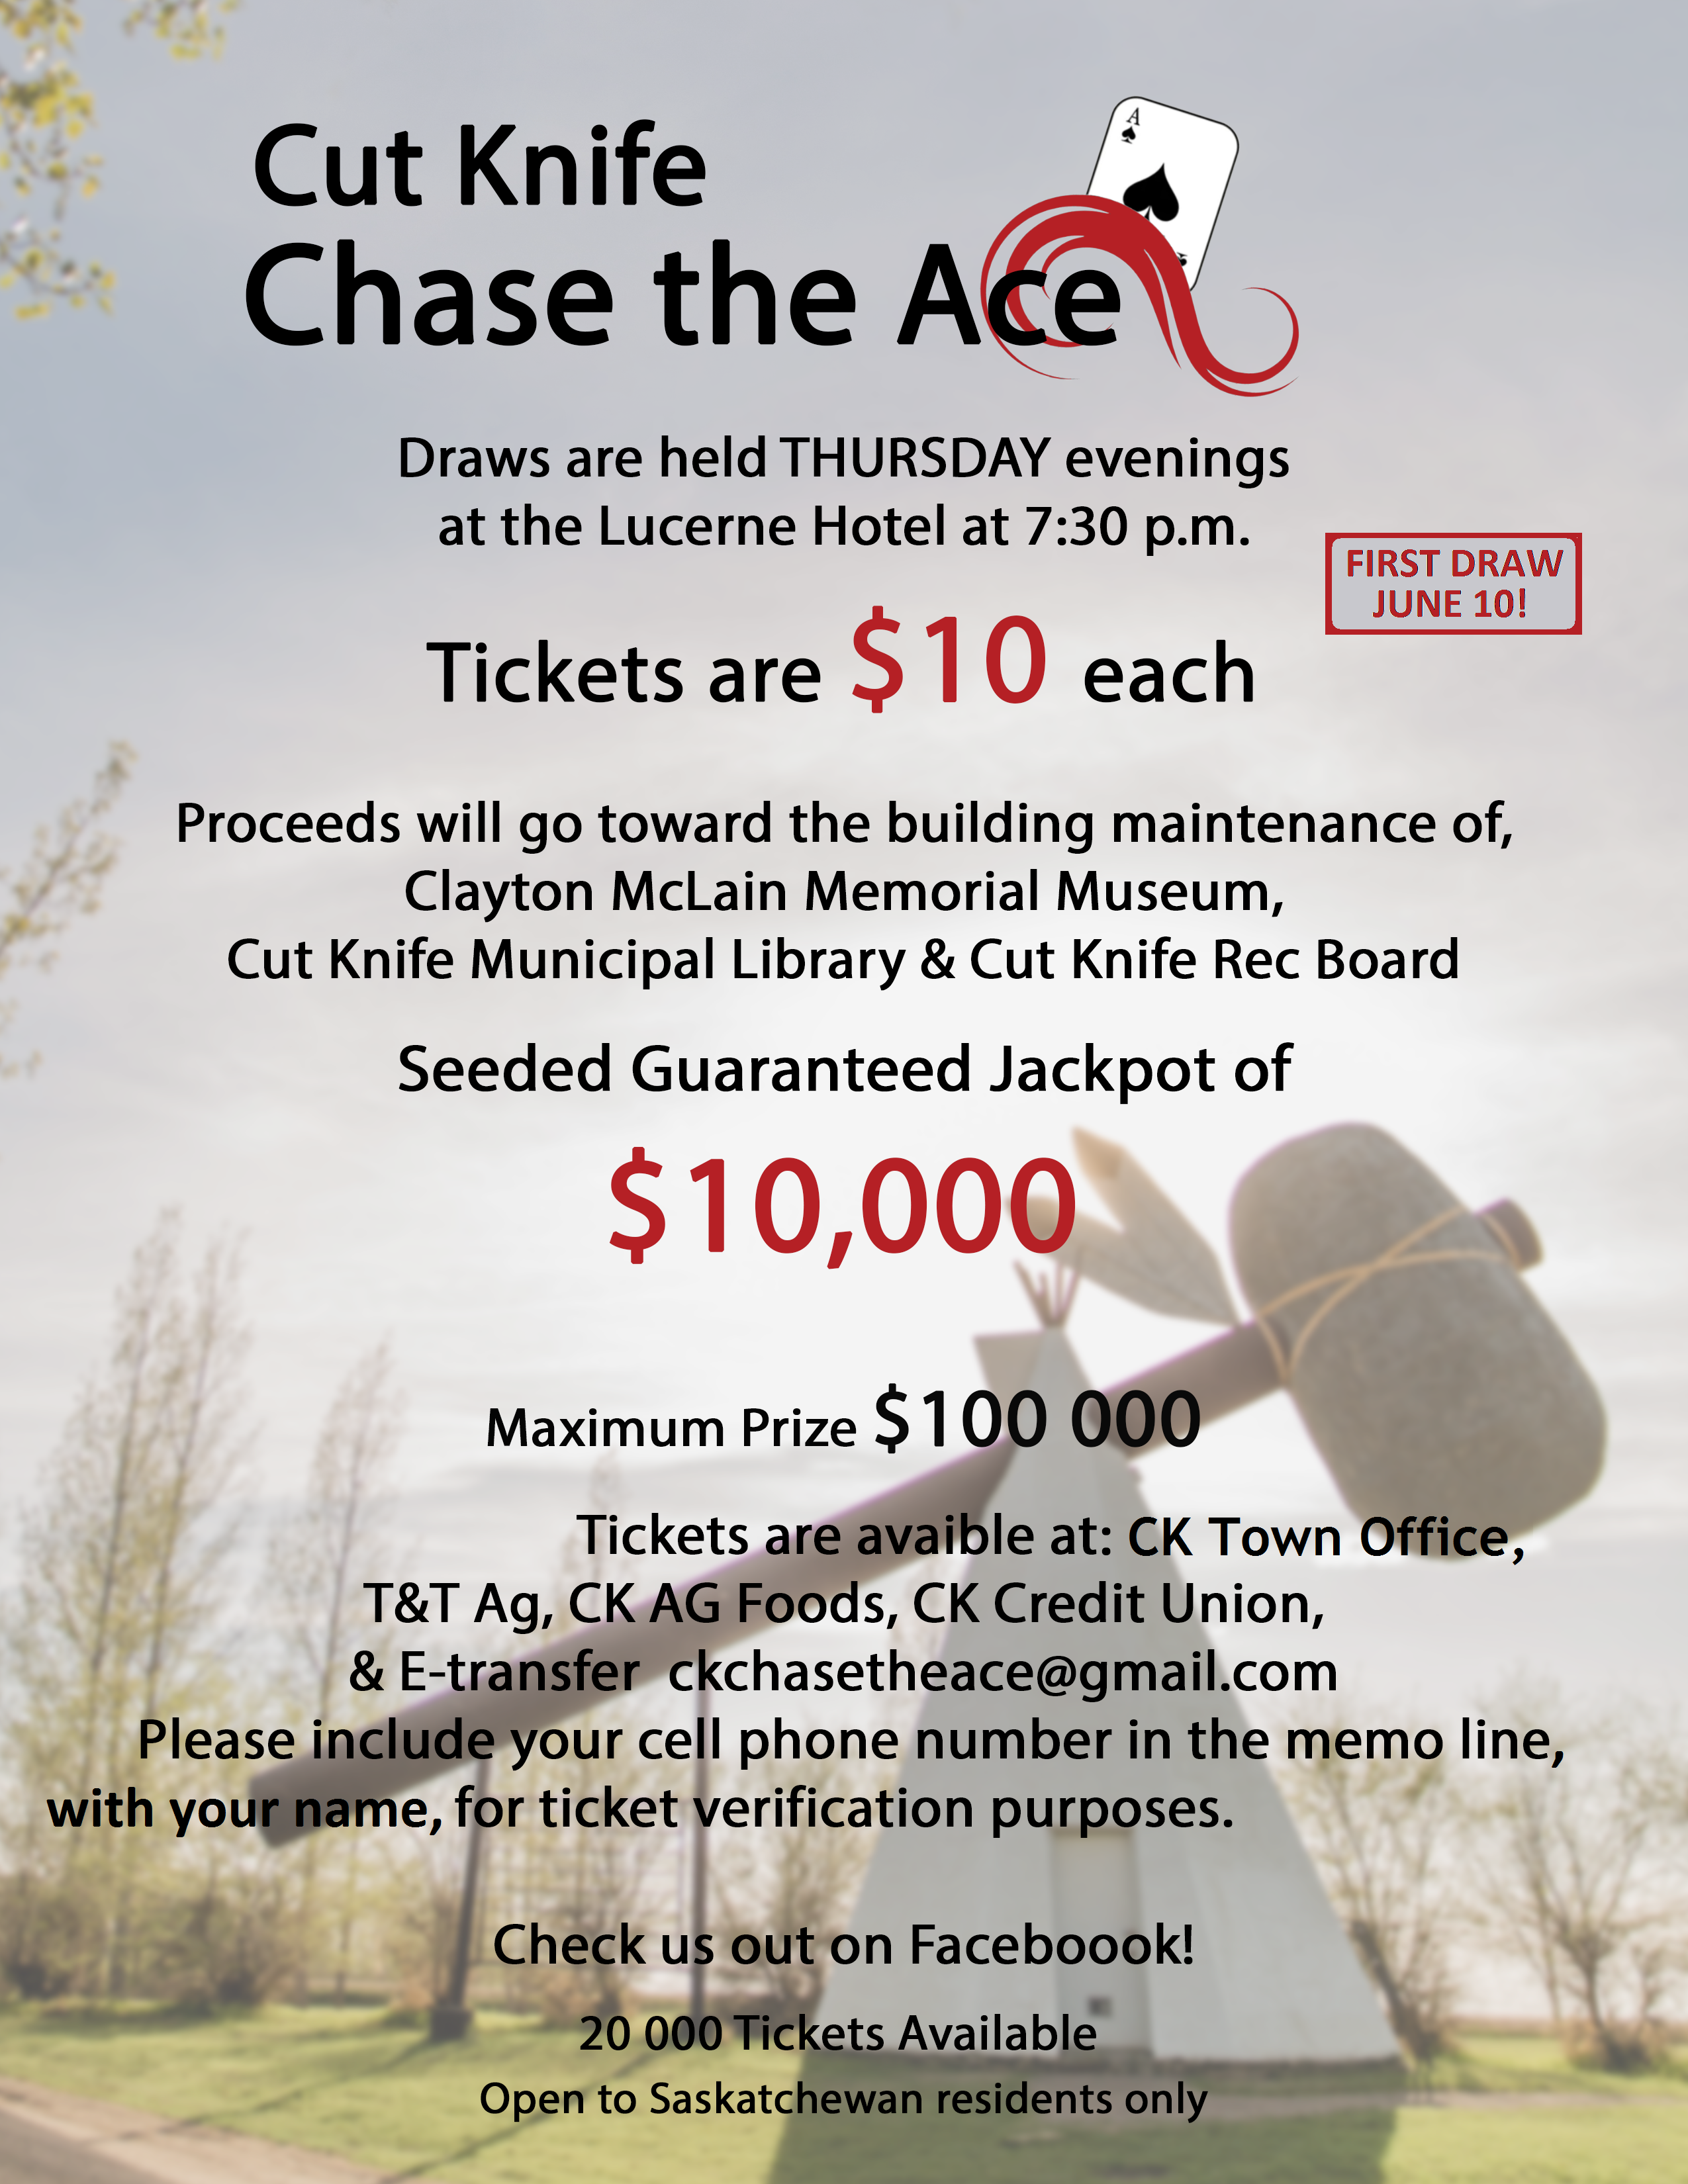 CK Chase the Ace Community Fundraiser